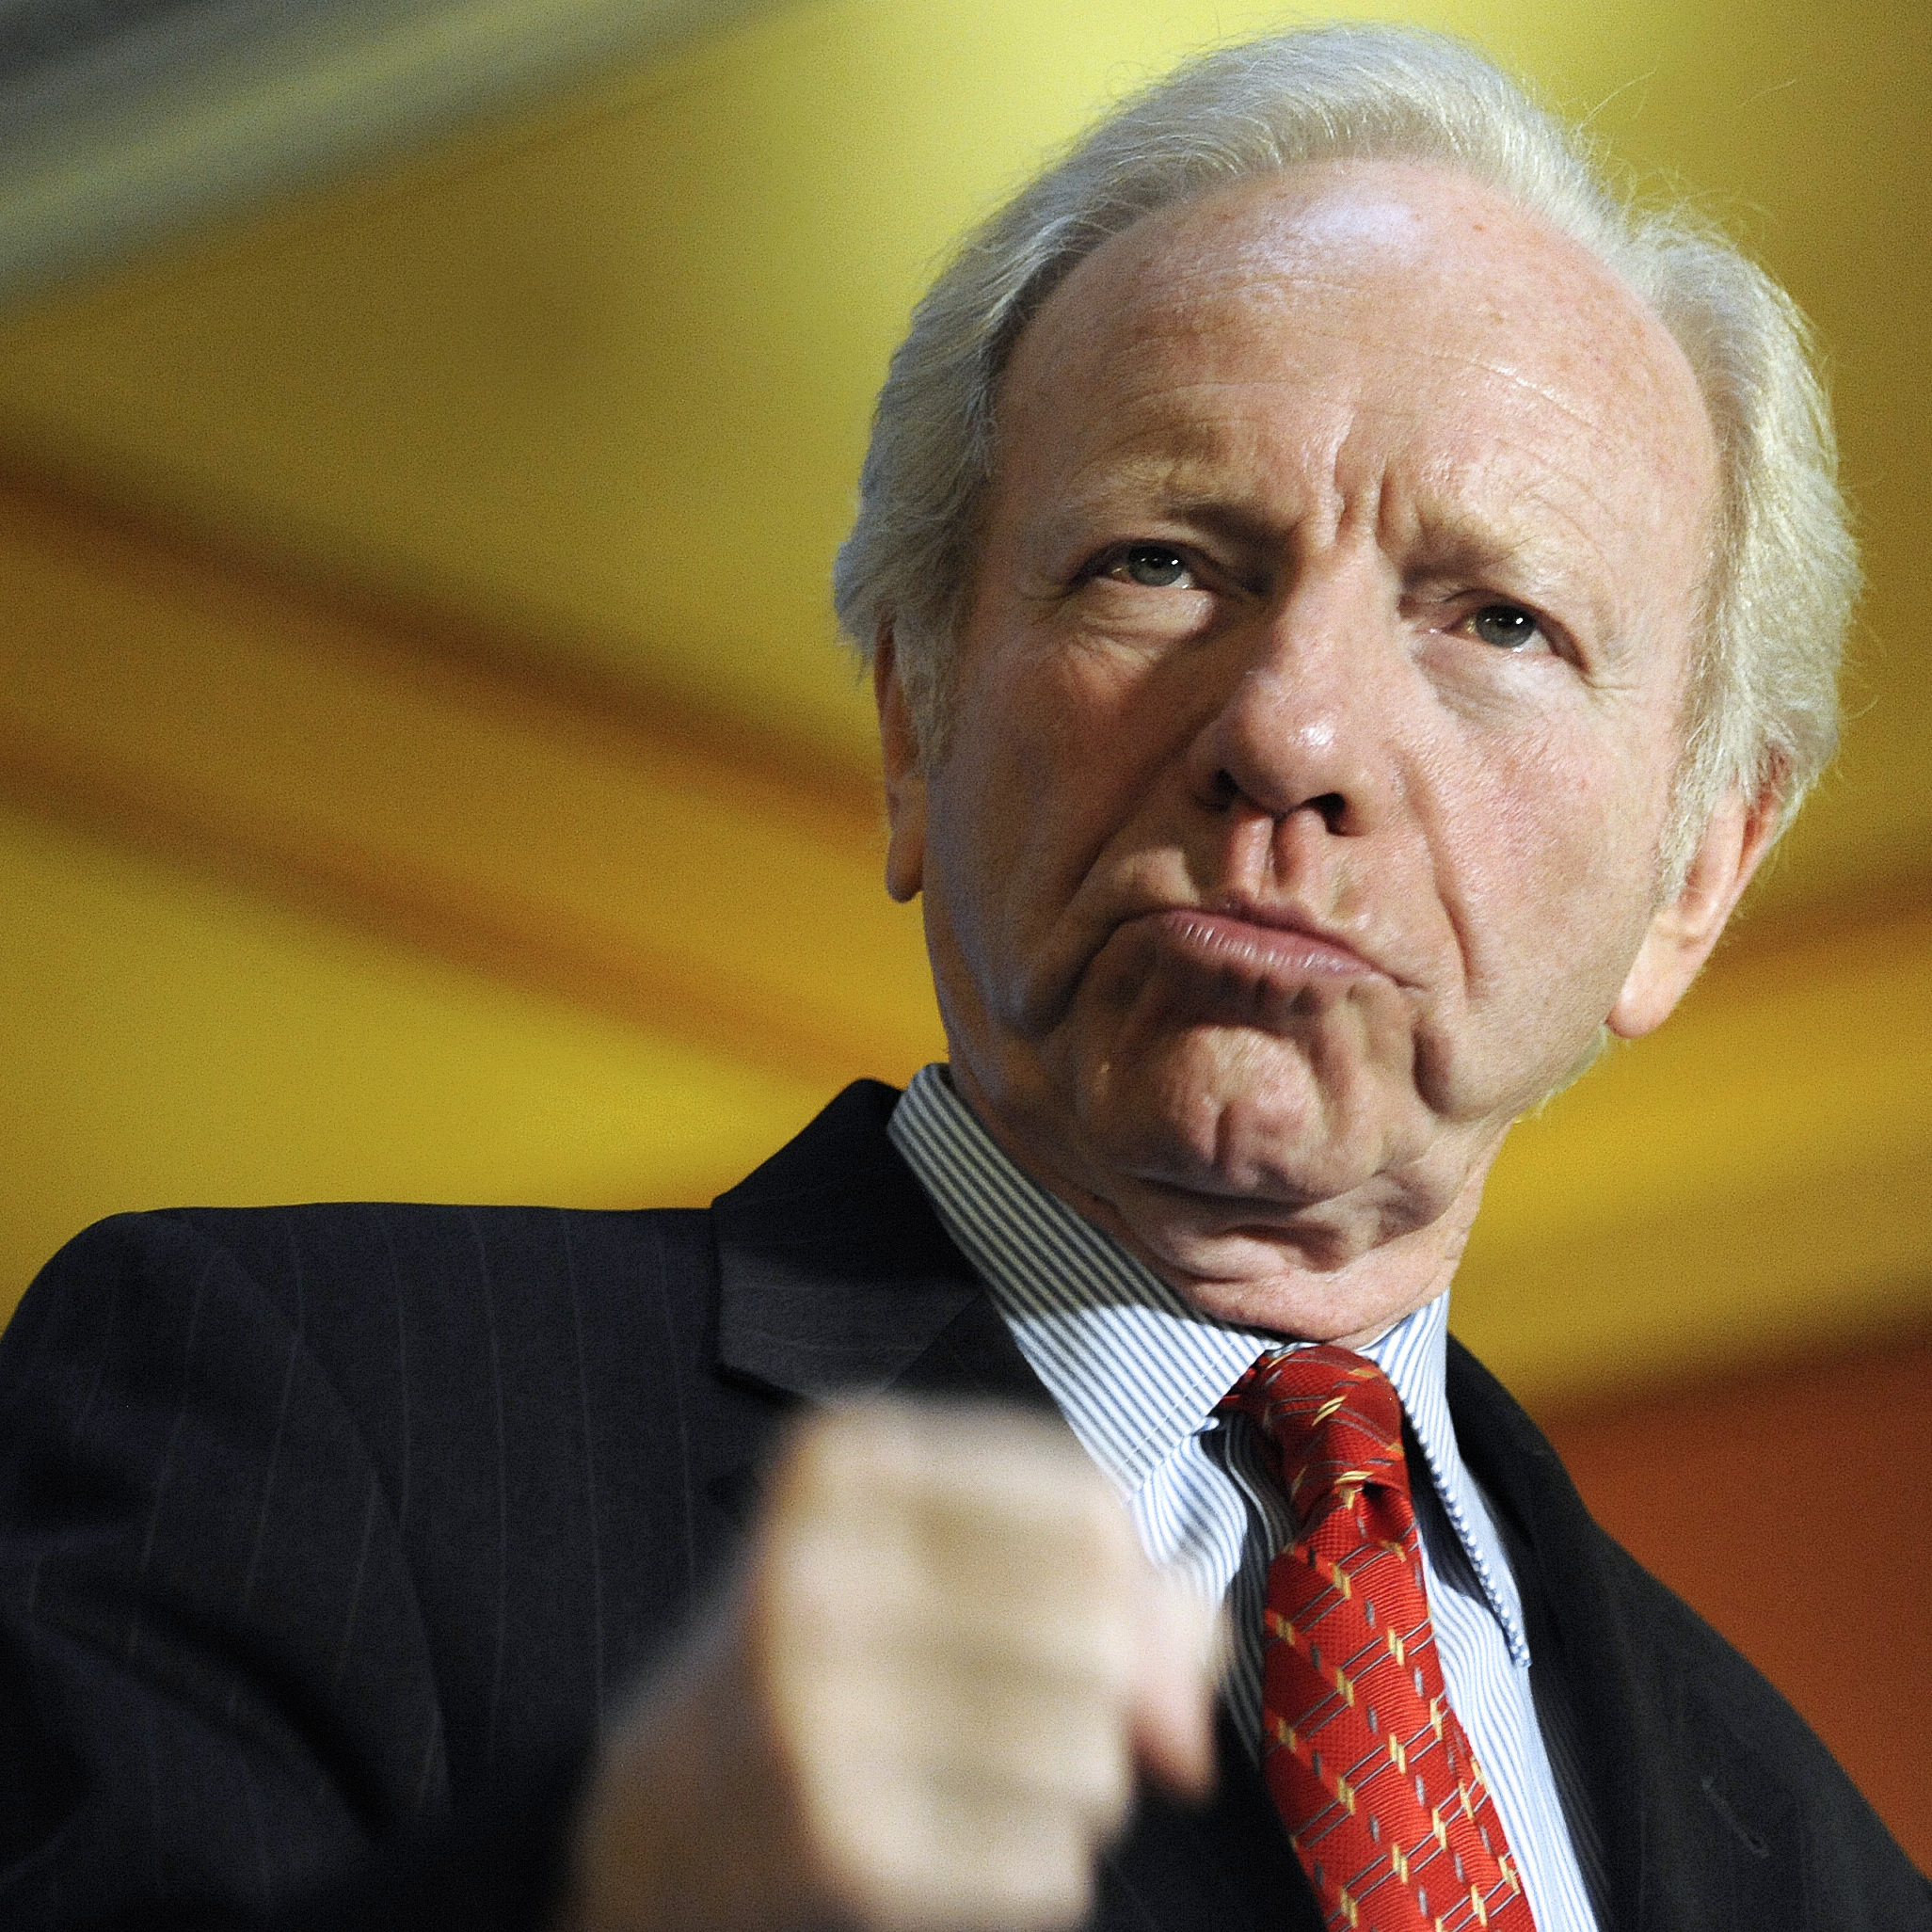 Sen. Joe Lieberman, an independent from Connecticut, at a news conference at the state Capitol in Hartford this month.